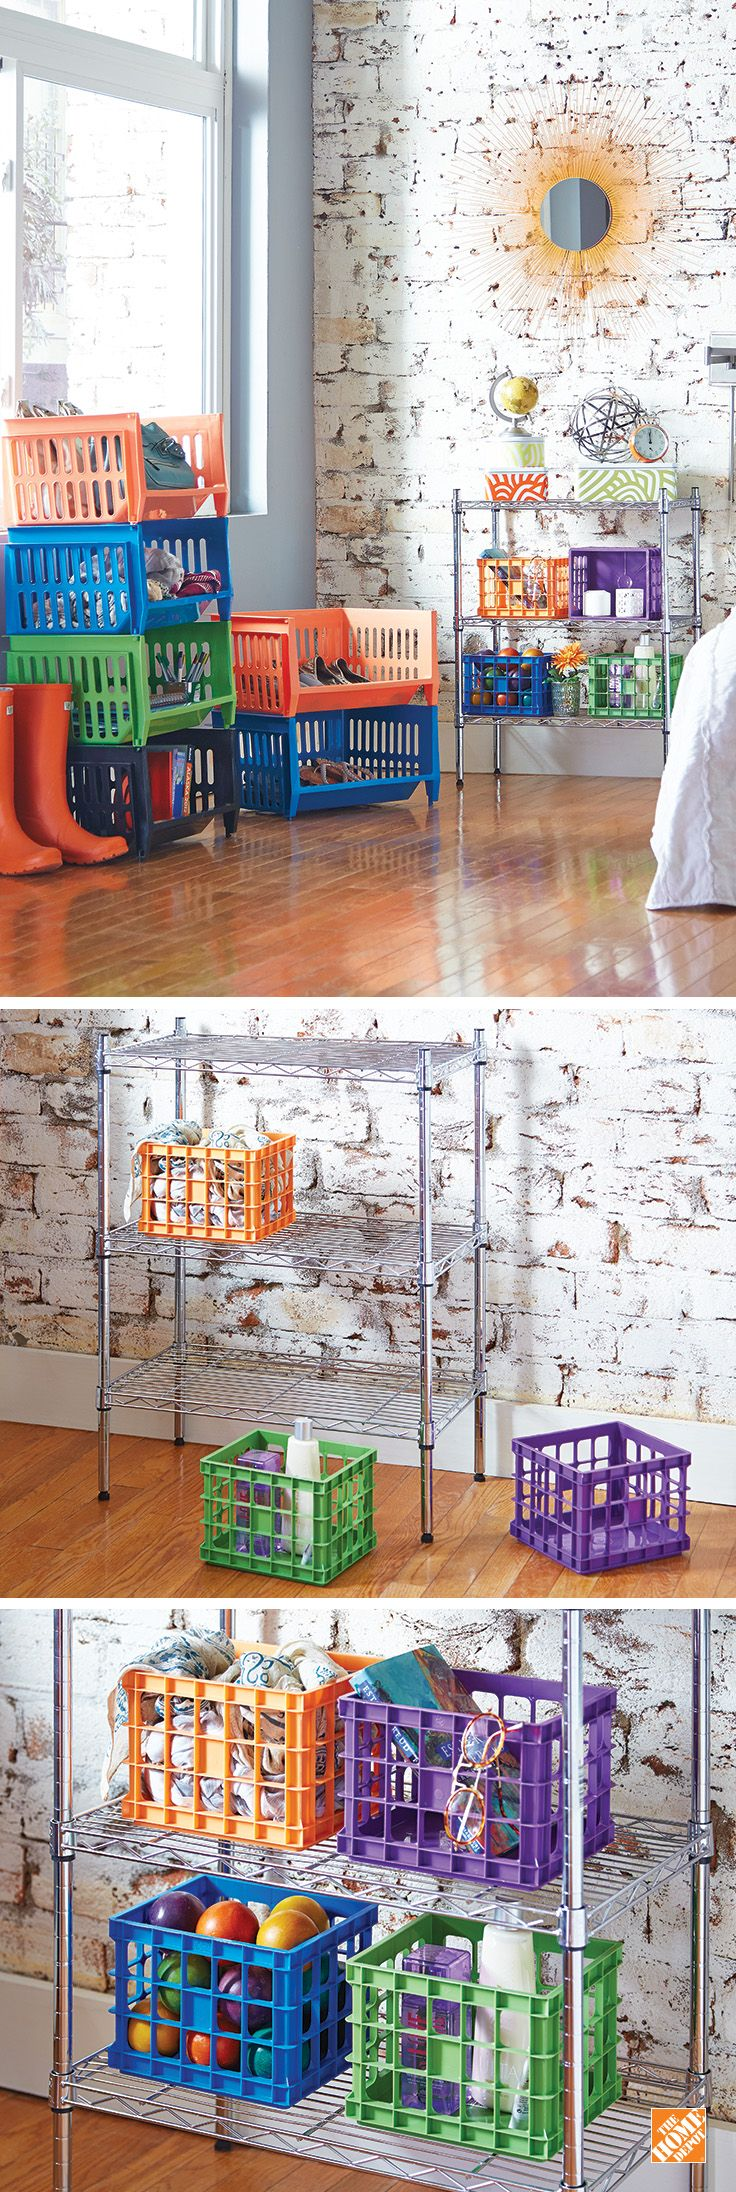 400 best storage and organization images on pinterest decorating your home or office can be functional too with these multicolored stackable baskets and